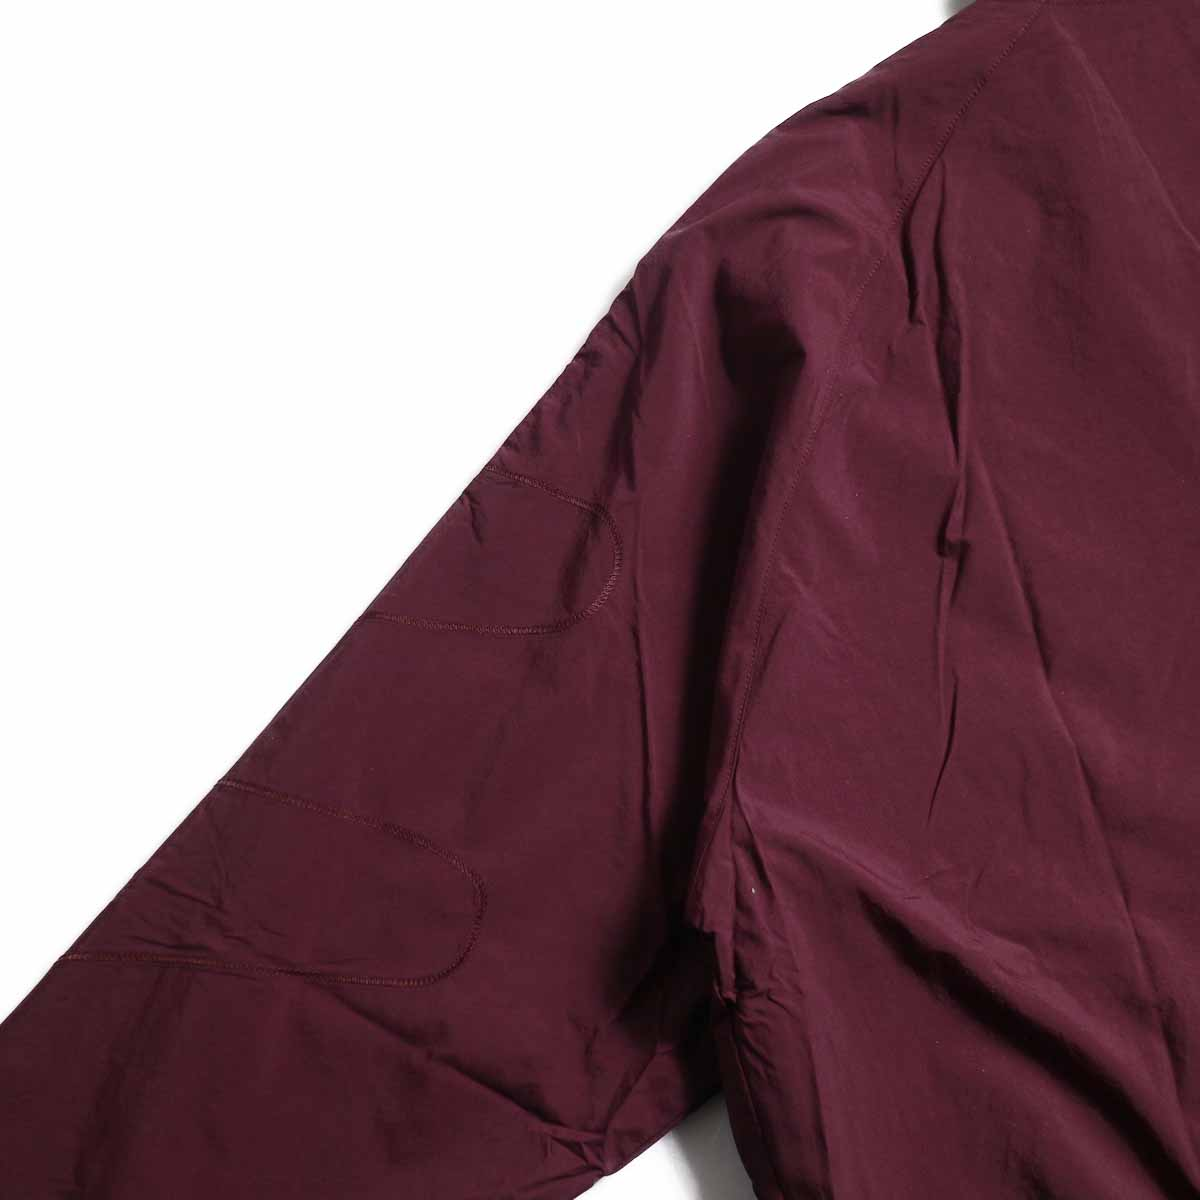 adidas originals / Flamestrike Woven Track Top -Maroon ステッチ